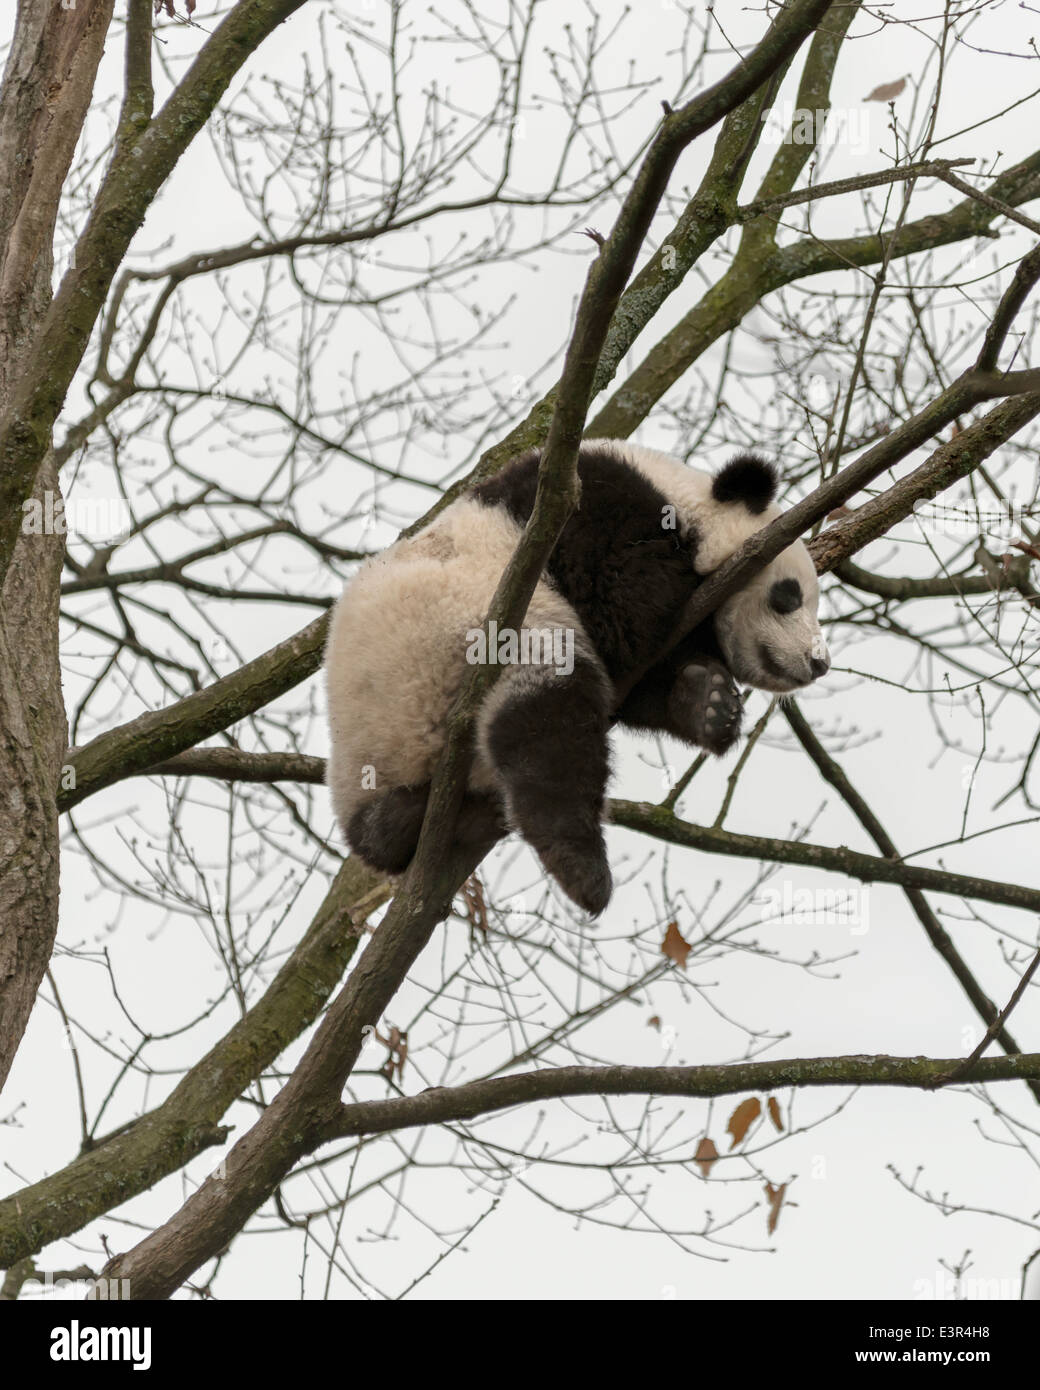 Baby panda sleeping wedged in a tree, Bifeng Xia, Sichuan Province, China - Stock Image